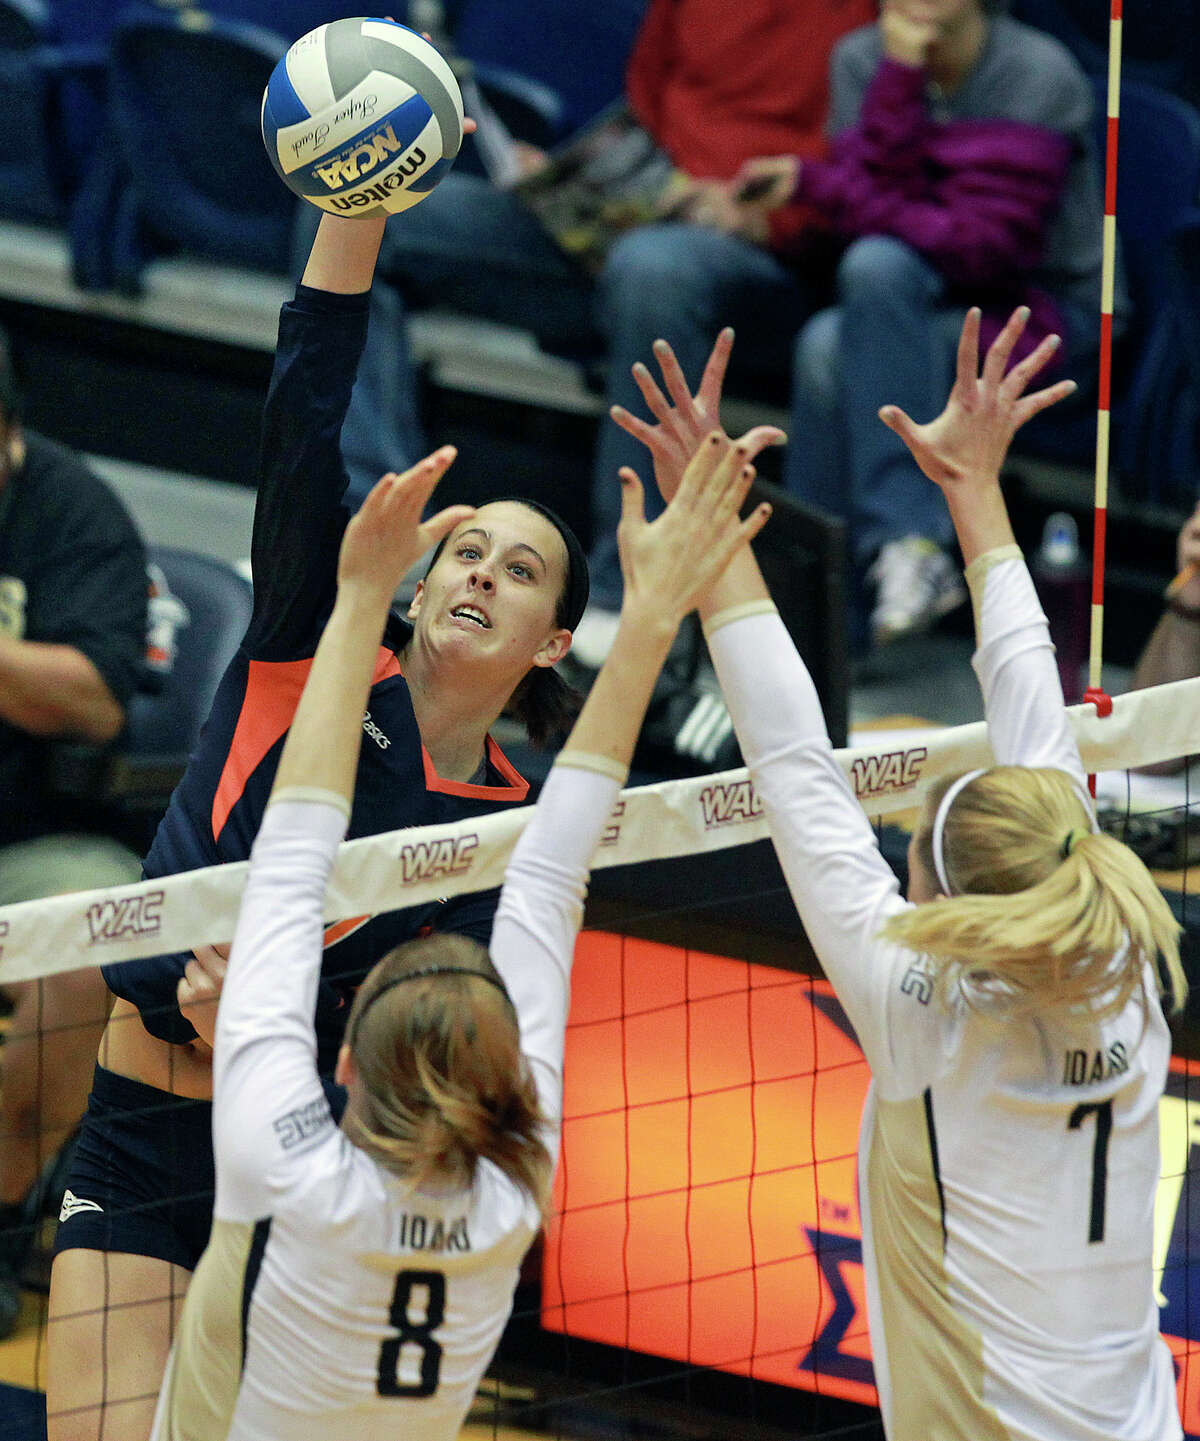 McKenzie Adams spikes for the Runners as Idaho beats UTSA 3-2 in the semifinals of the WAC volleyball tournament at the UTSA Convocation Center on November 20, 2012.